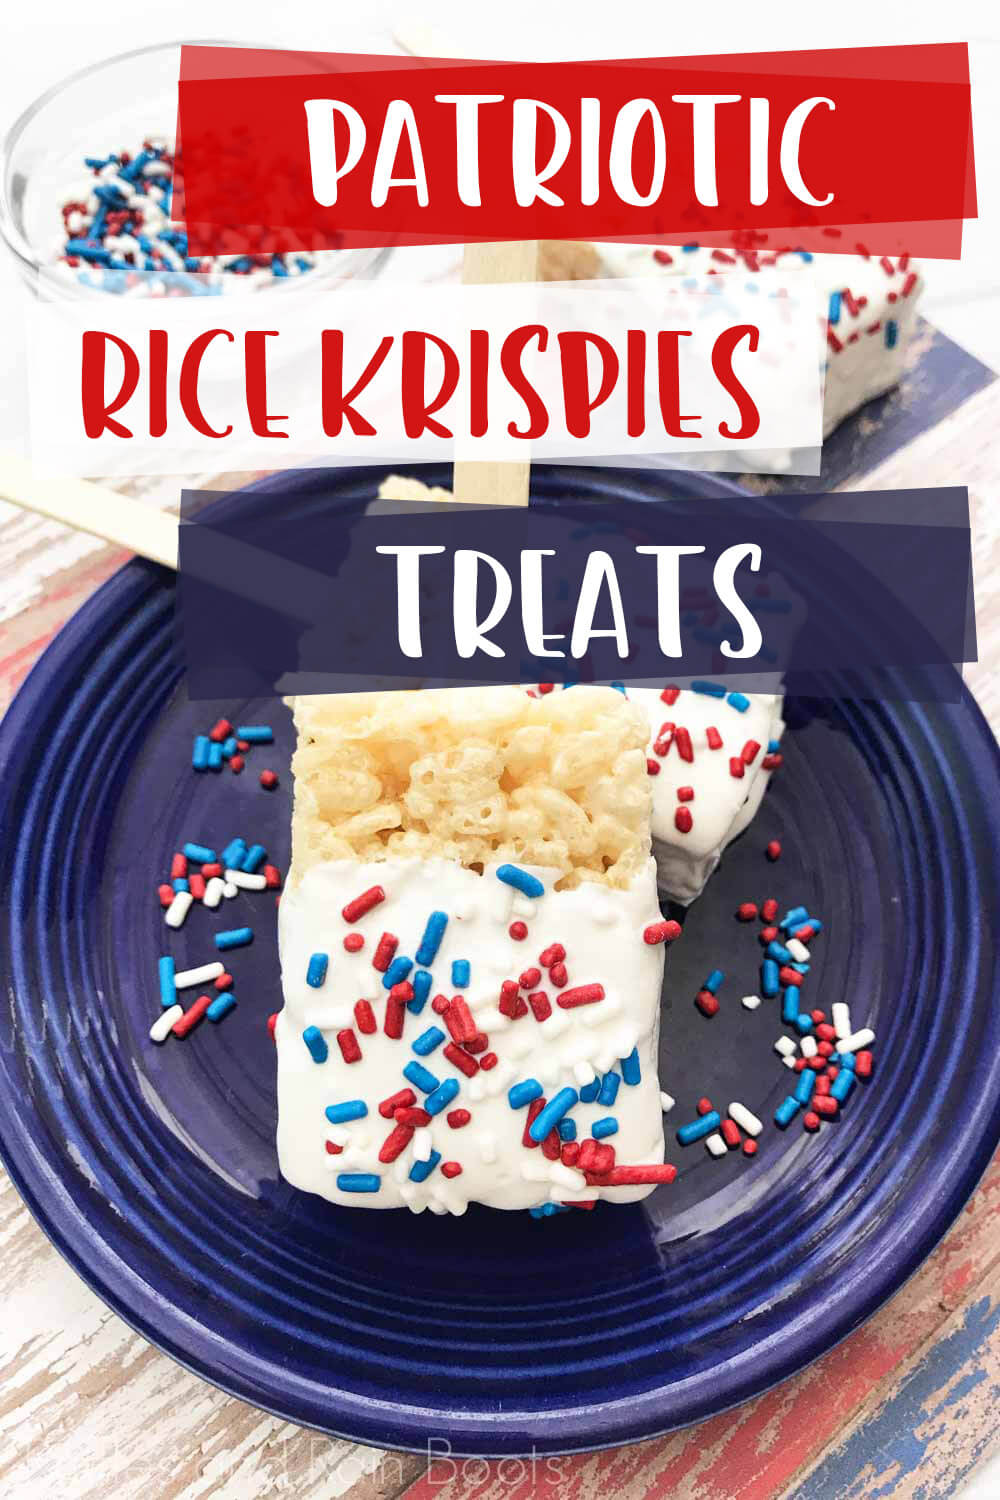 text overlay which reads patriotic rice krispies treats over image of red white and blue rice krispies treats on a blue plate on a multicolored wood table